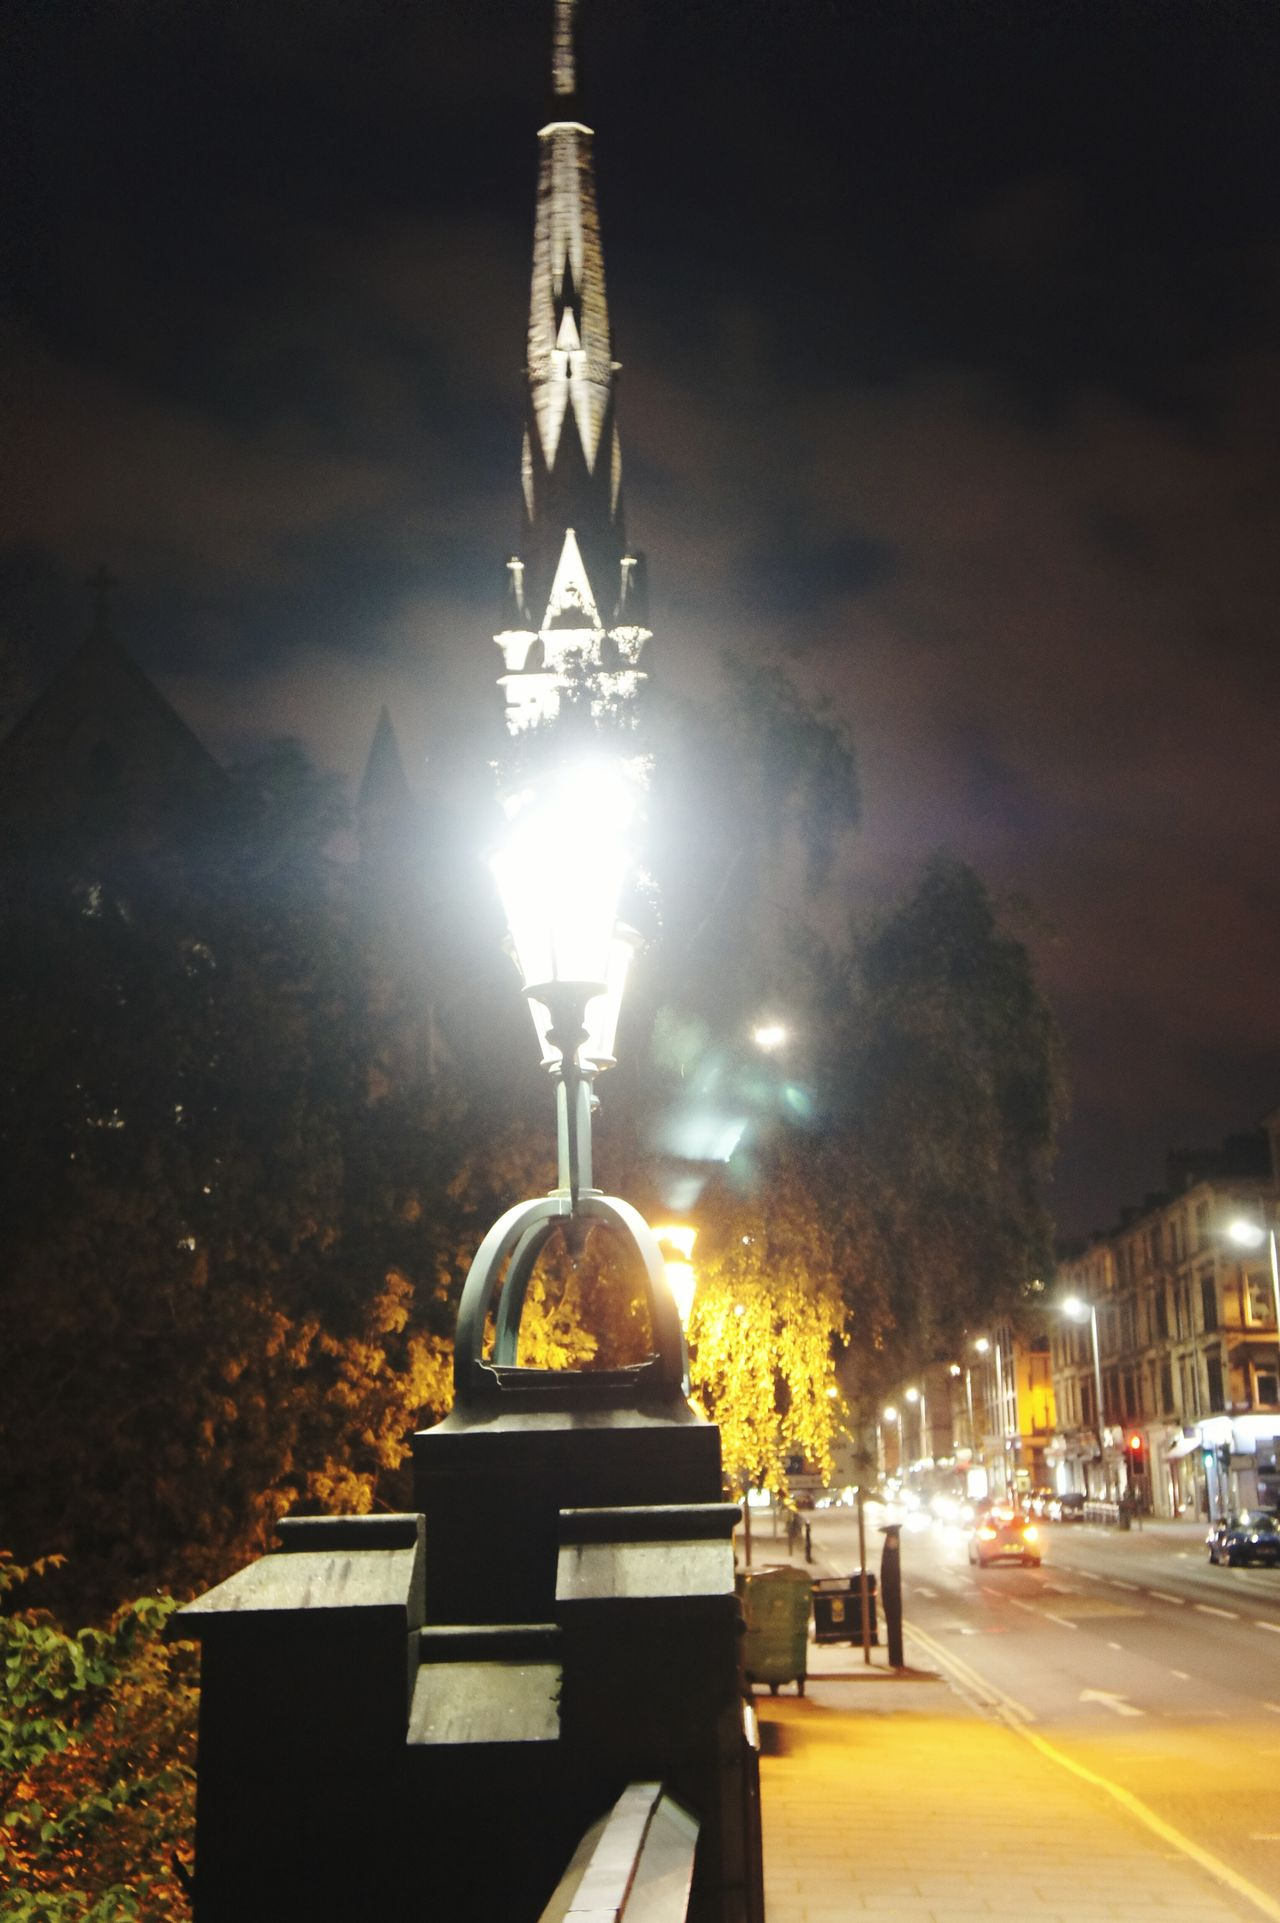 Streetphotography Night Lights Gothic Church Church Towers Street Lamps Clouds And Sky Geometric Shapes Nature On Bridge My Point Of View